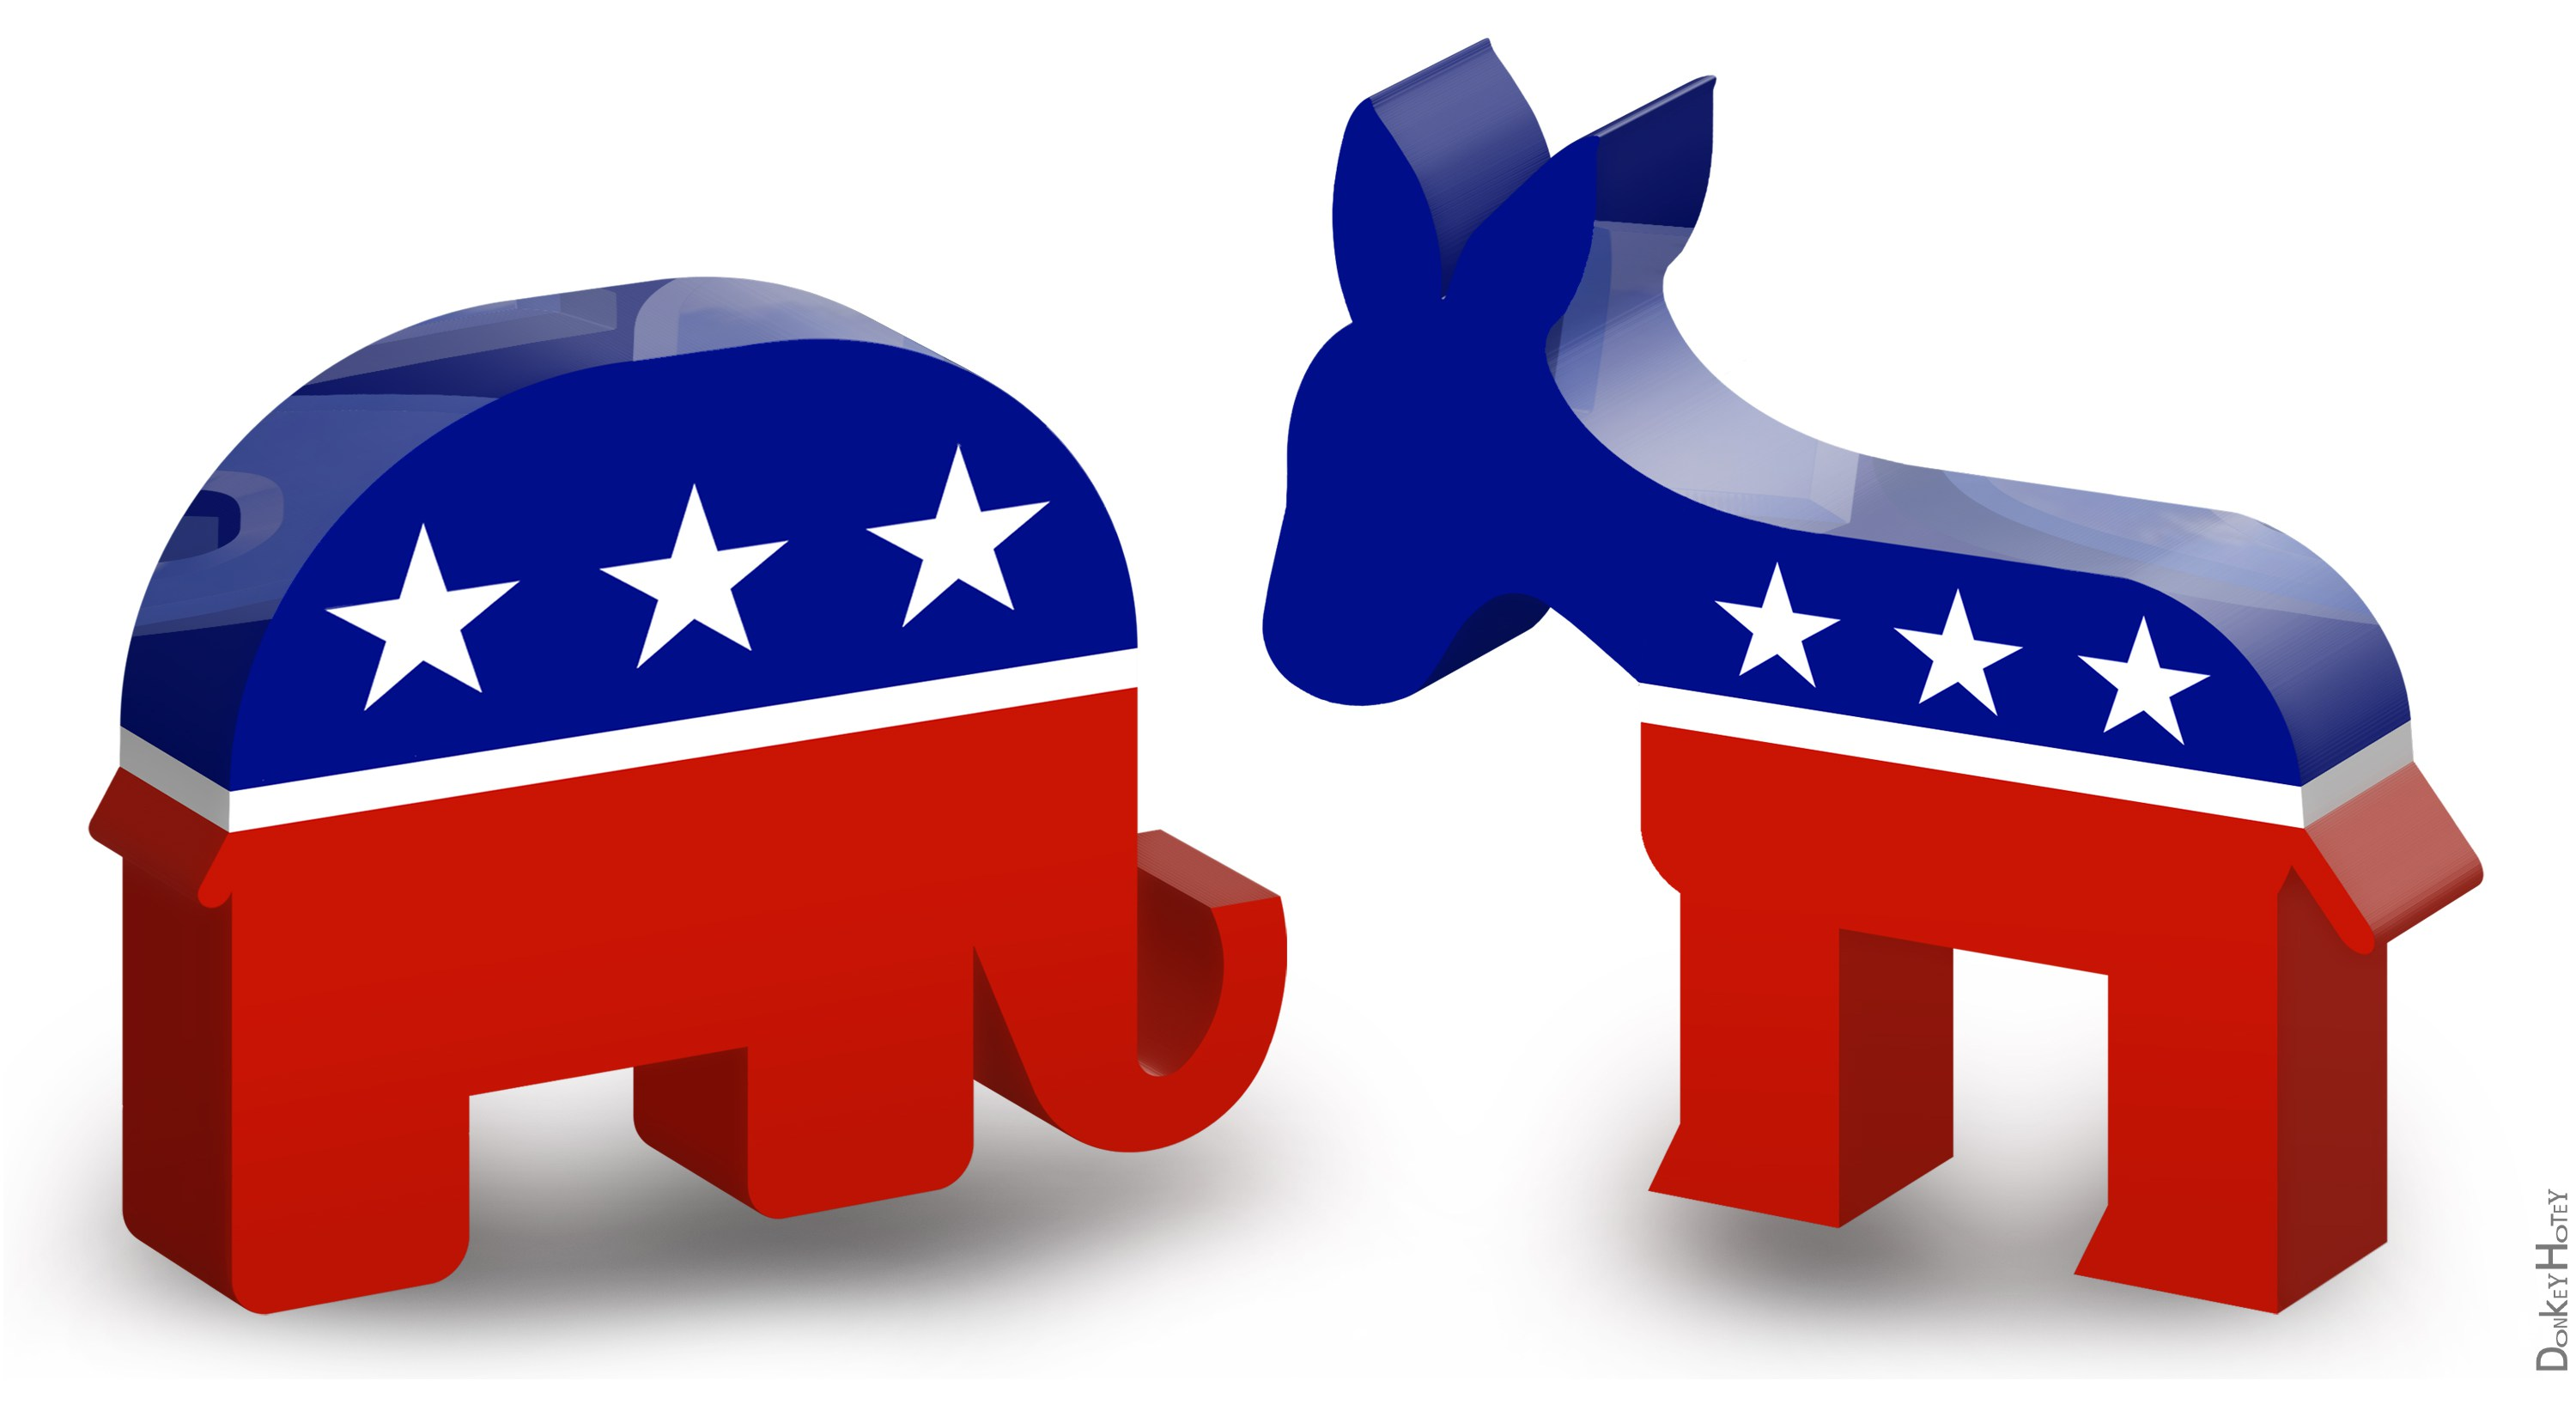 the two political parties